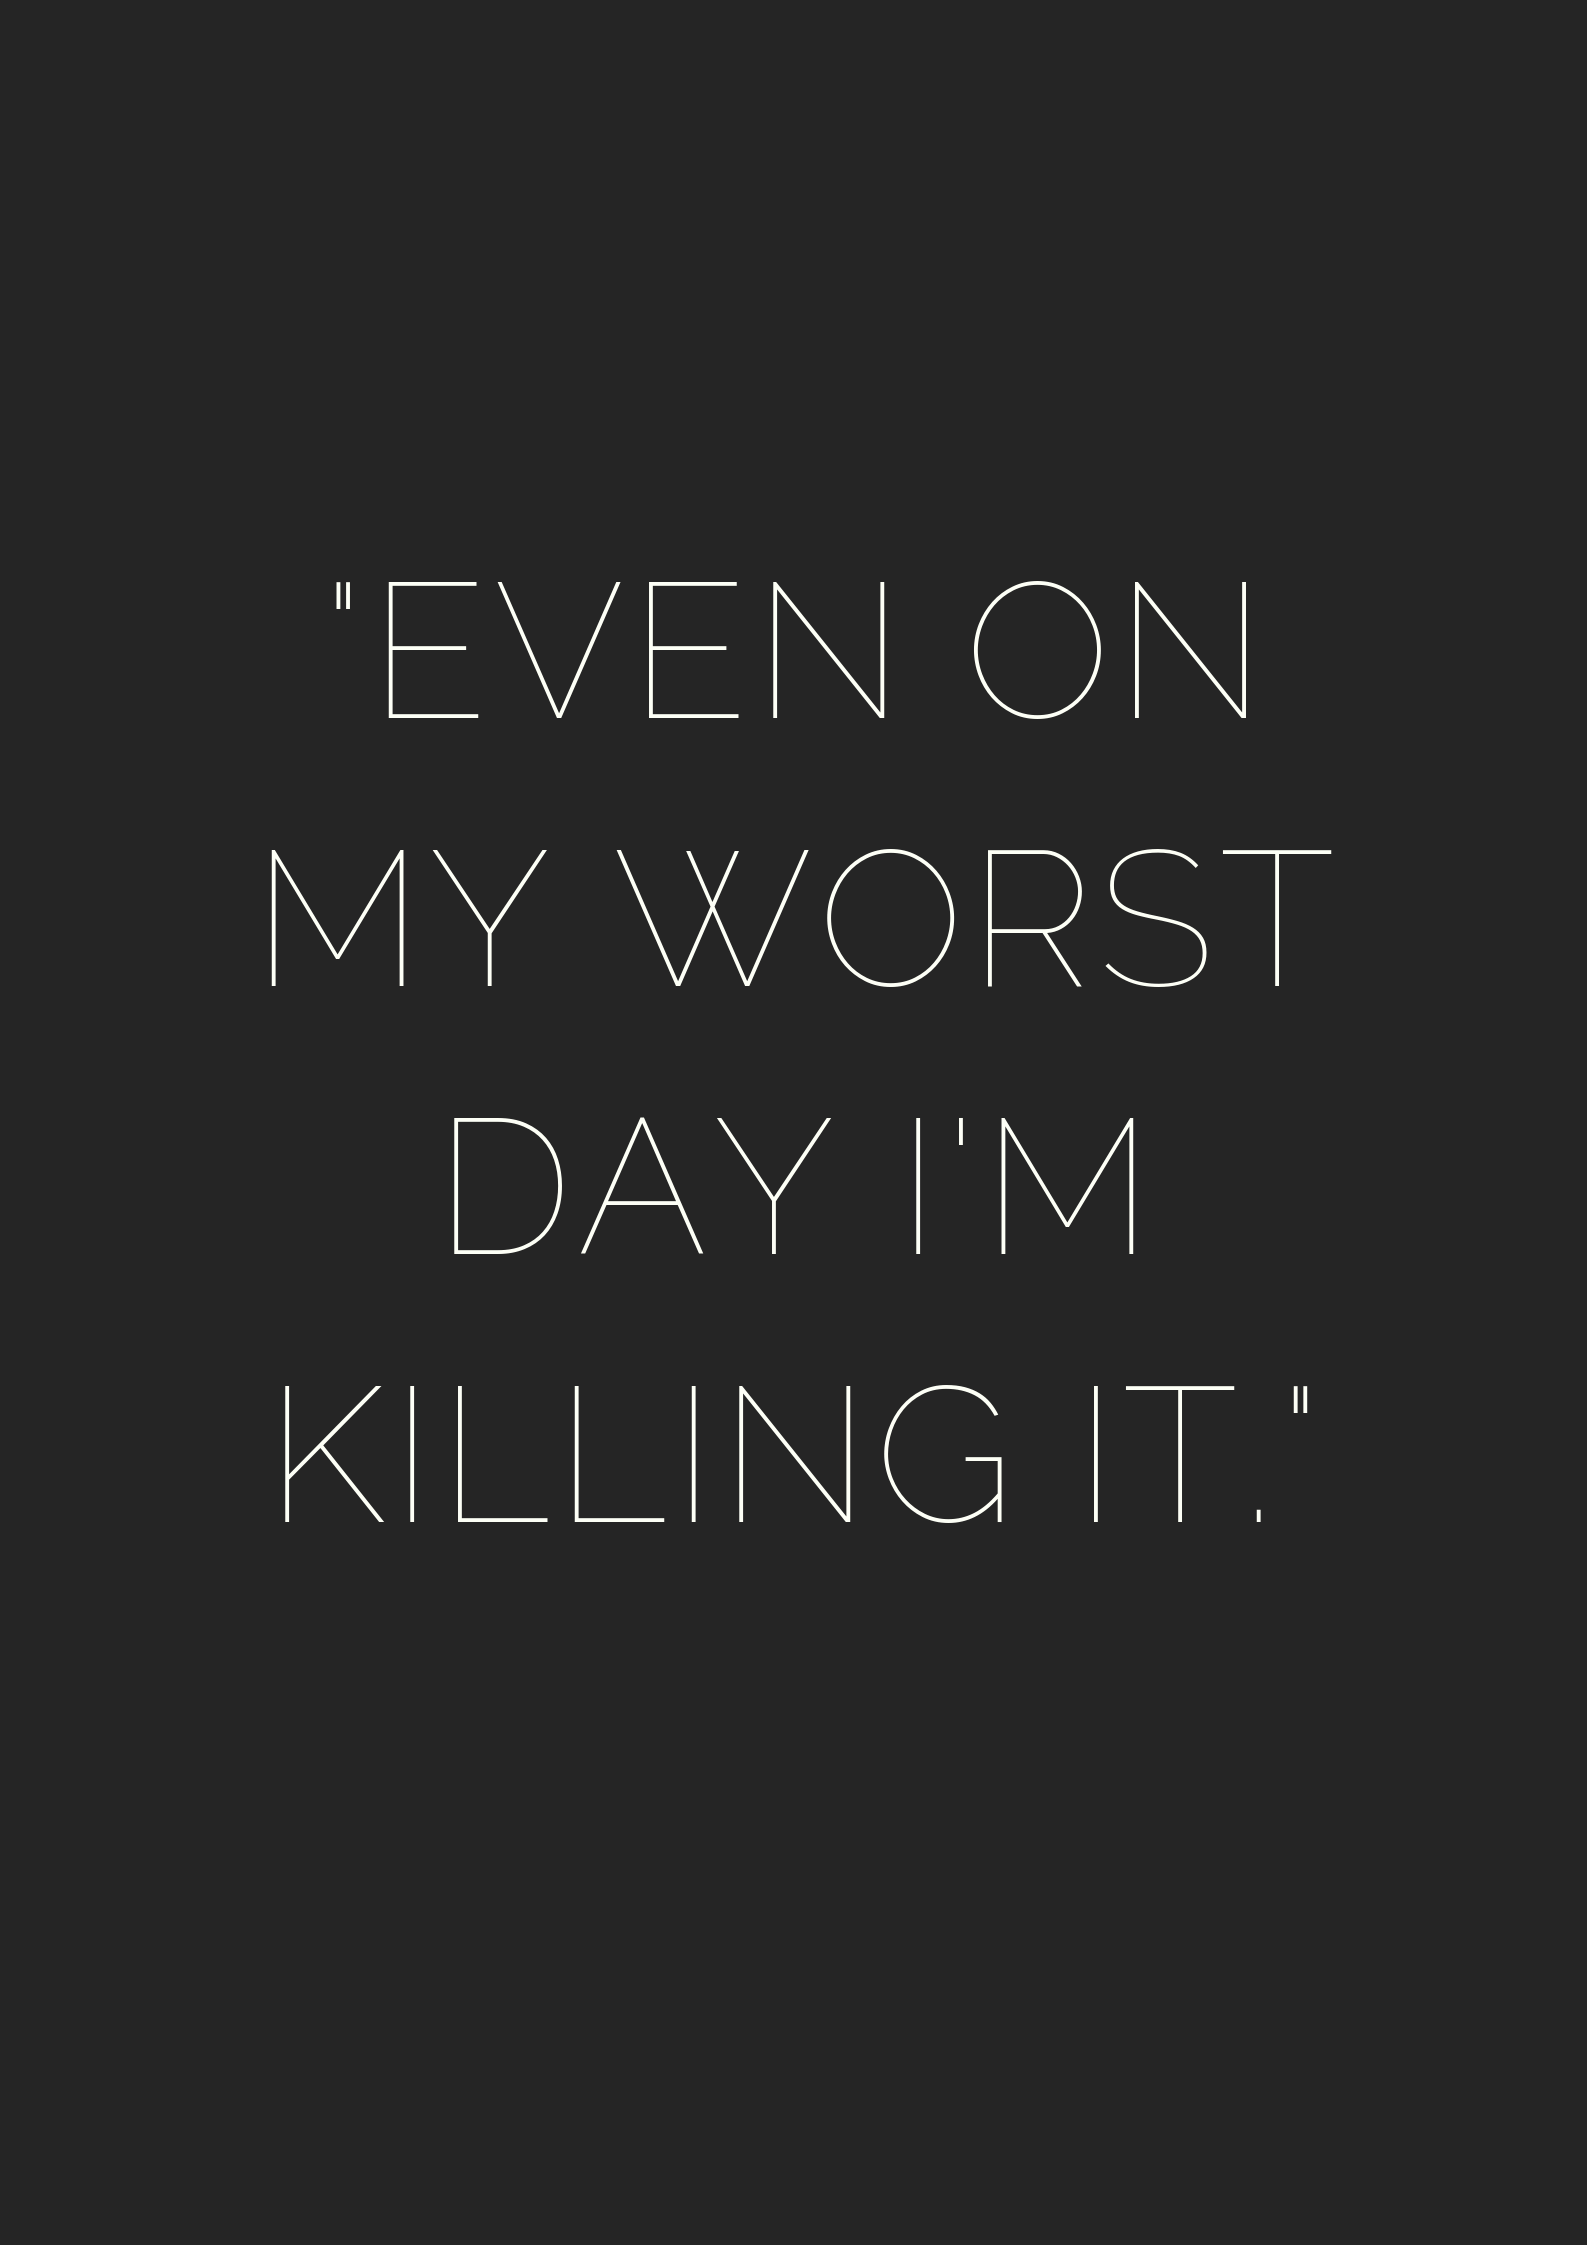 45 Totally Sarcastic Quotes For When Work Is Beating You Down Short Powerful Quotes Badass Quotes Sarcastic Quotes